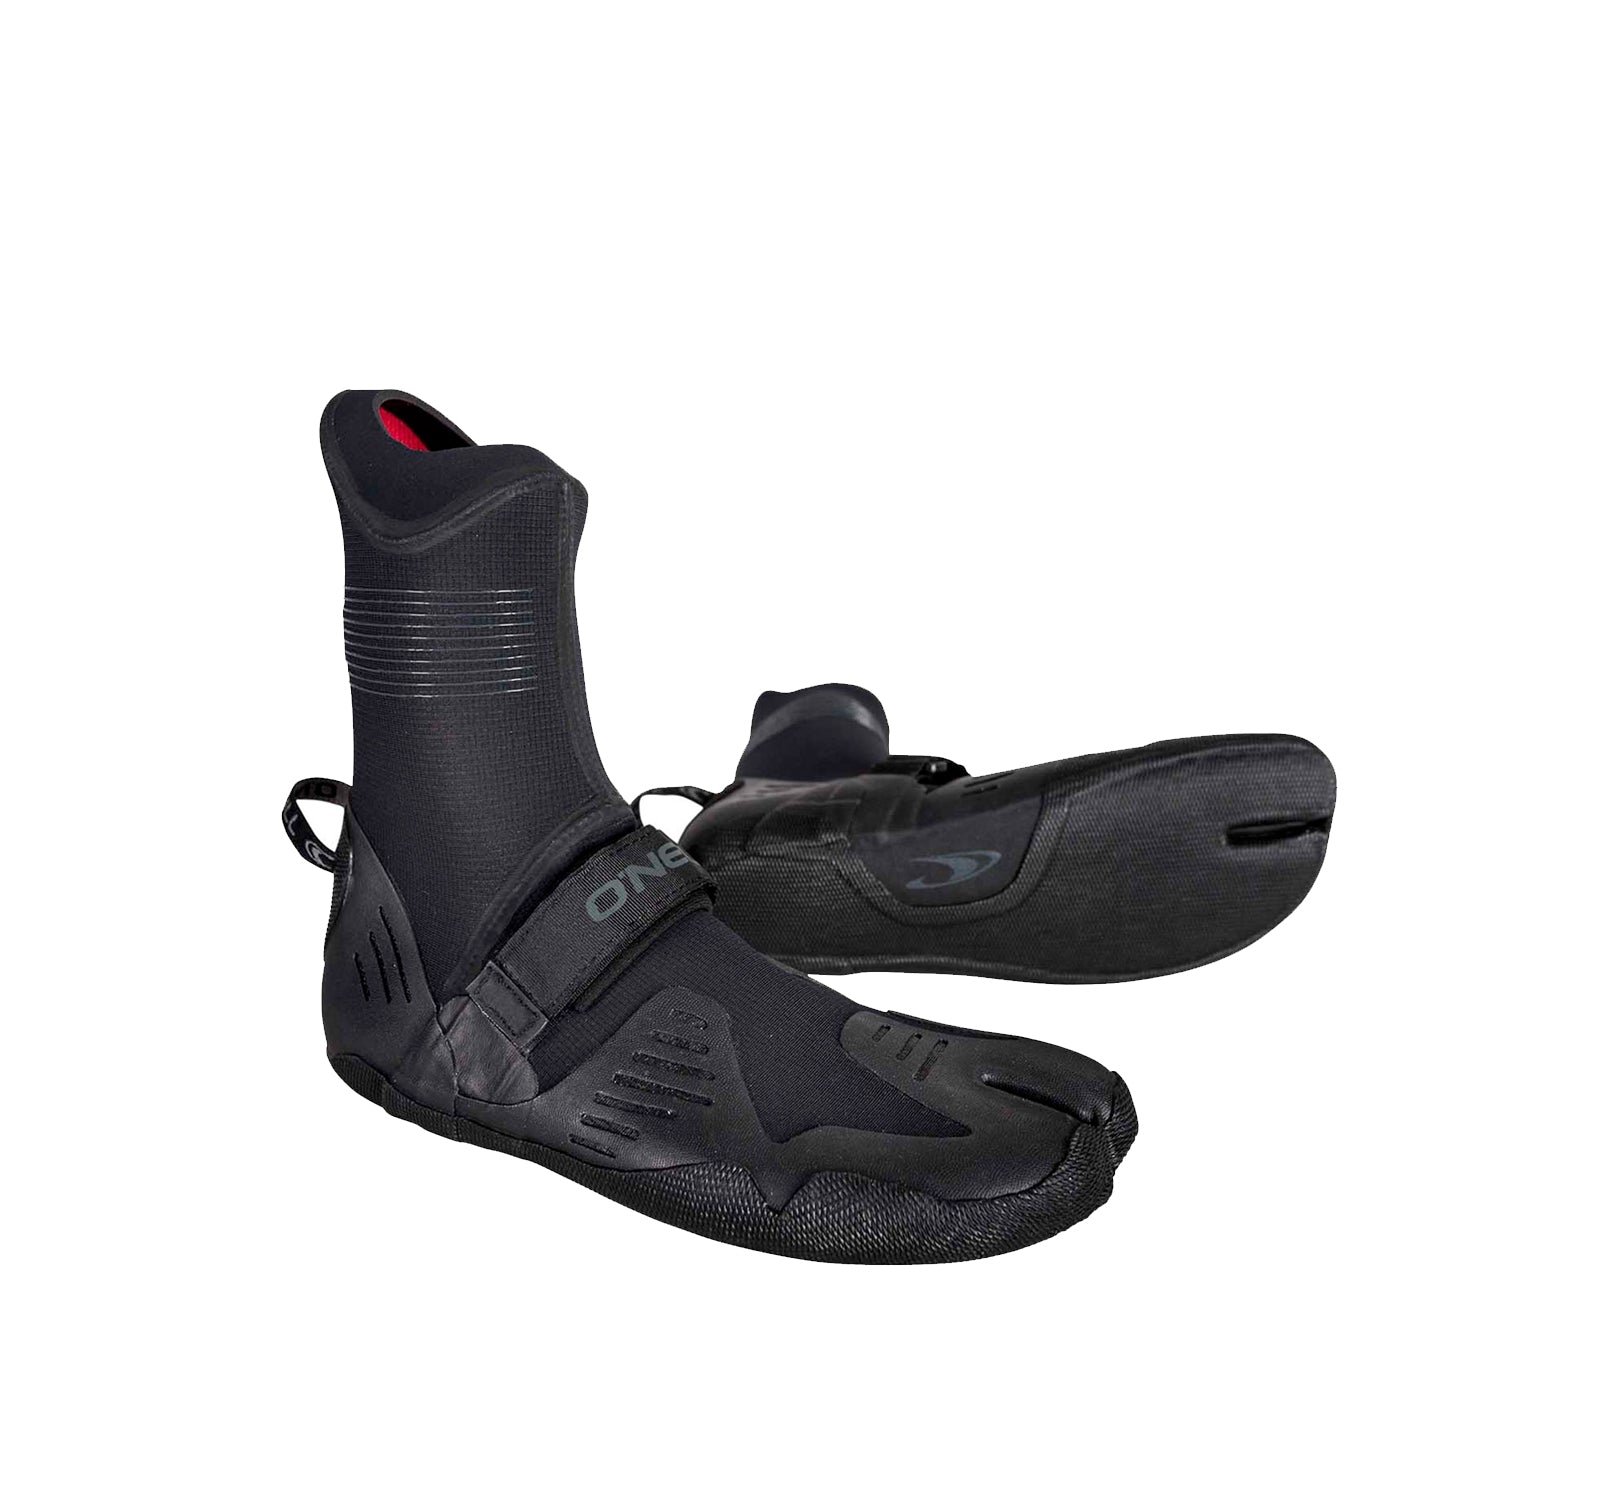 Water Sports O Neill Heat 3mm Split-toe Wetsuit Boot